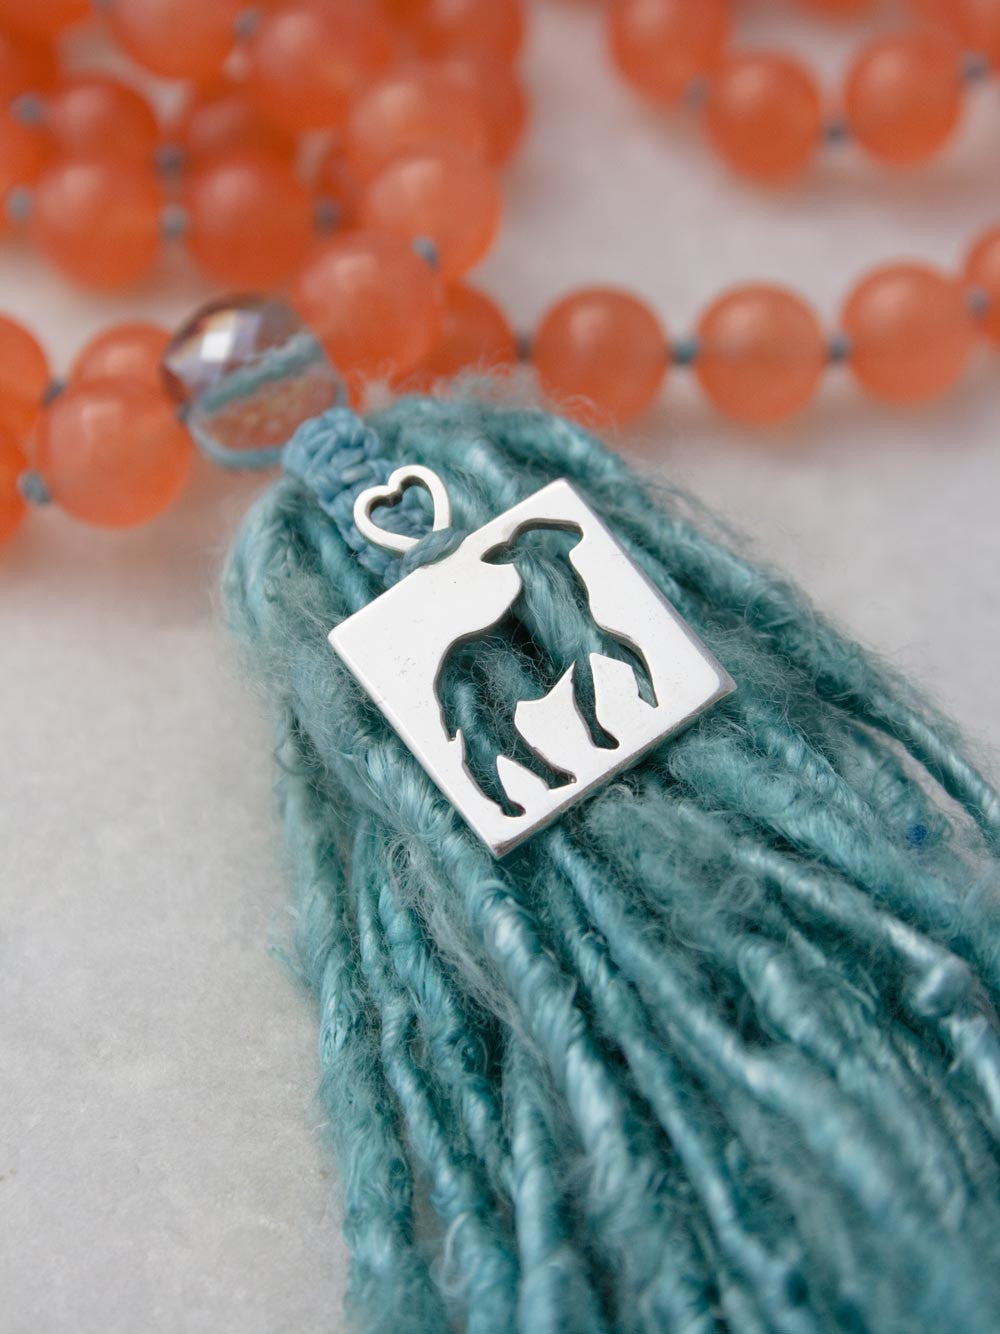 Our sweet and spunky Tribe of Lambs Mala in 10mm Tuscan peach aventurine with silver Tribe of Lambs pendant and sari silk tassel: pendant view.